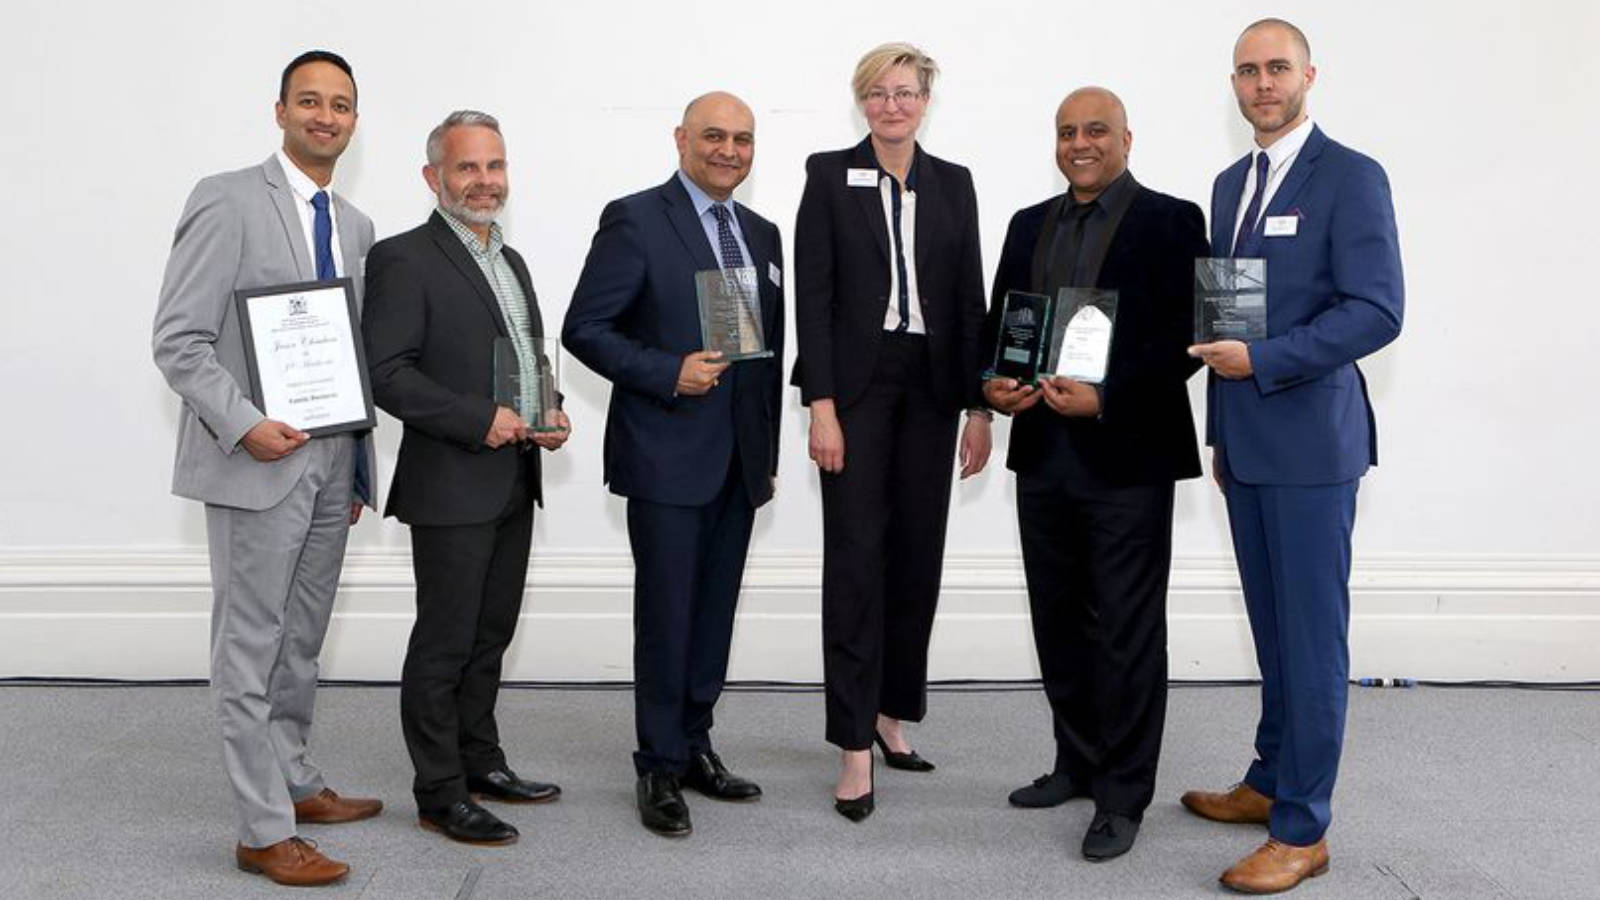 Dr Nik Kotecha OBE winning three IoD (Institute of Directors awards).